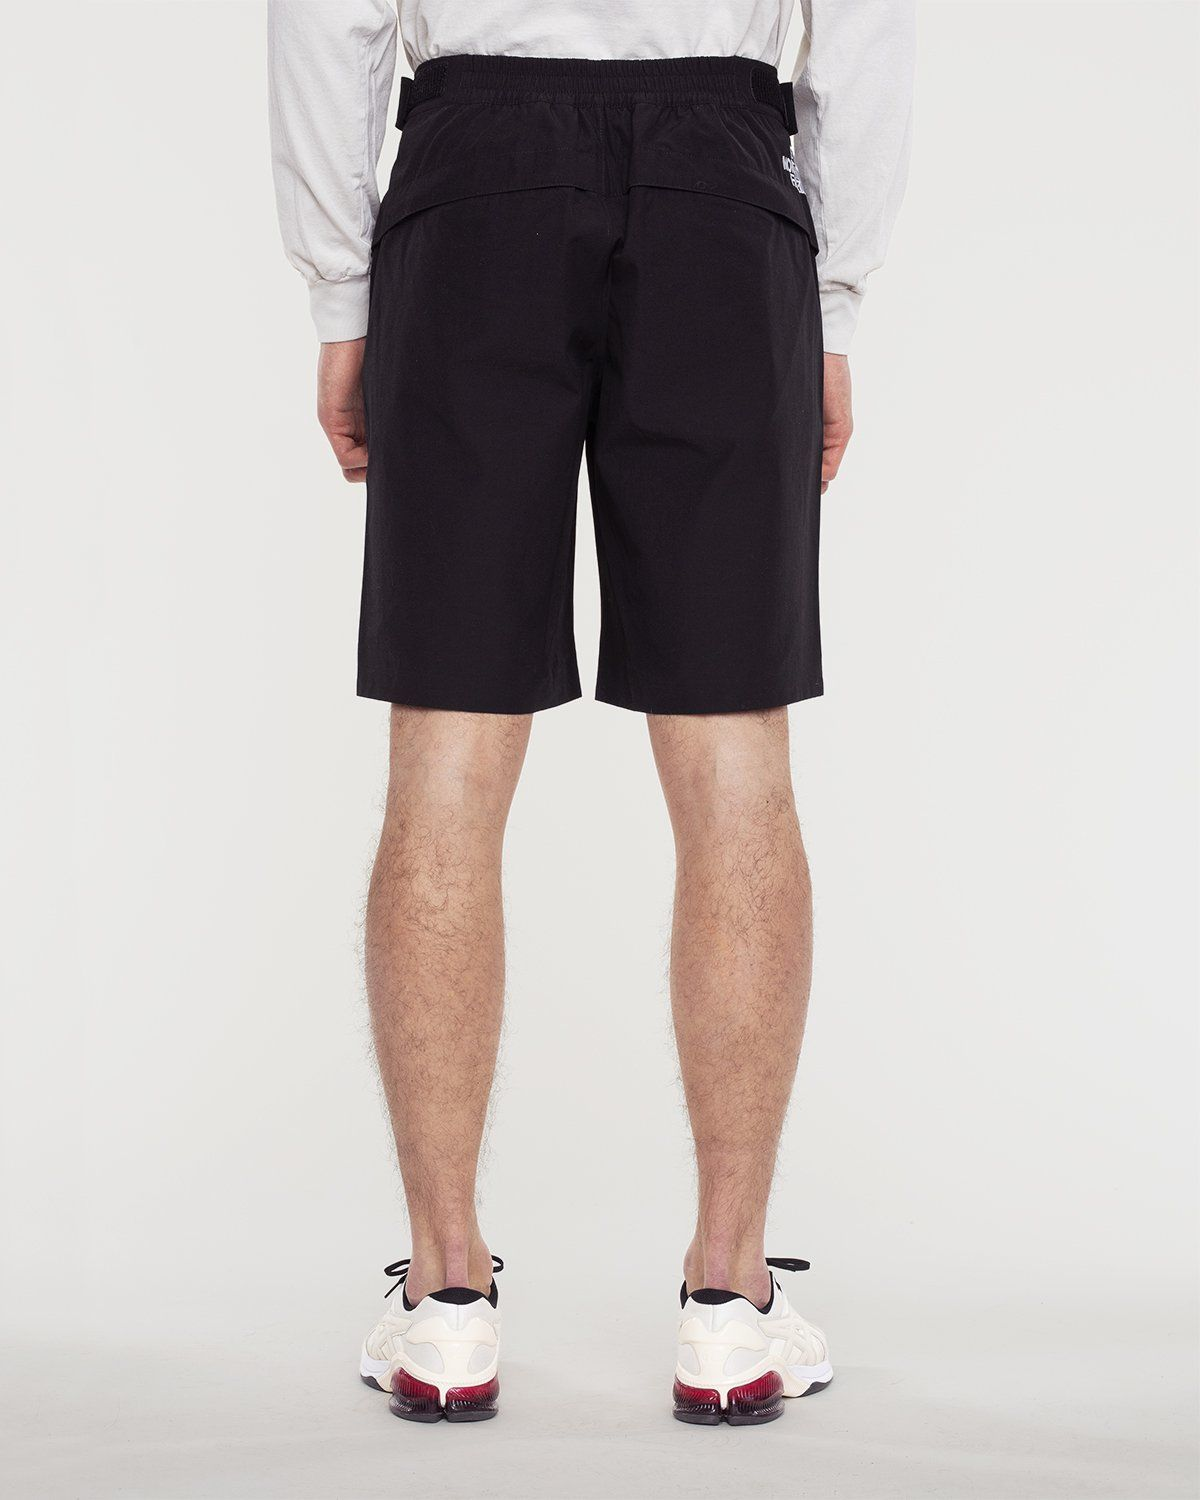 The North Face Black Series - Spectra® Shorts Black - Image 6